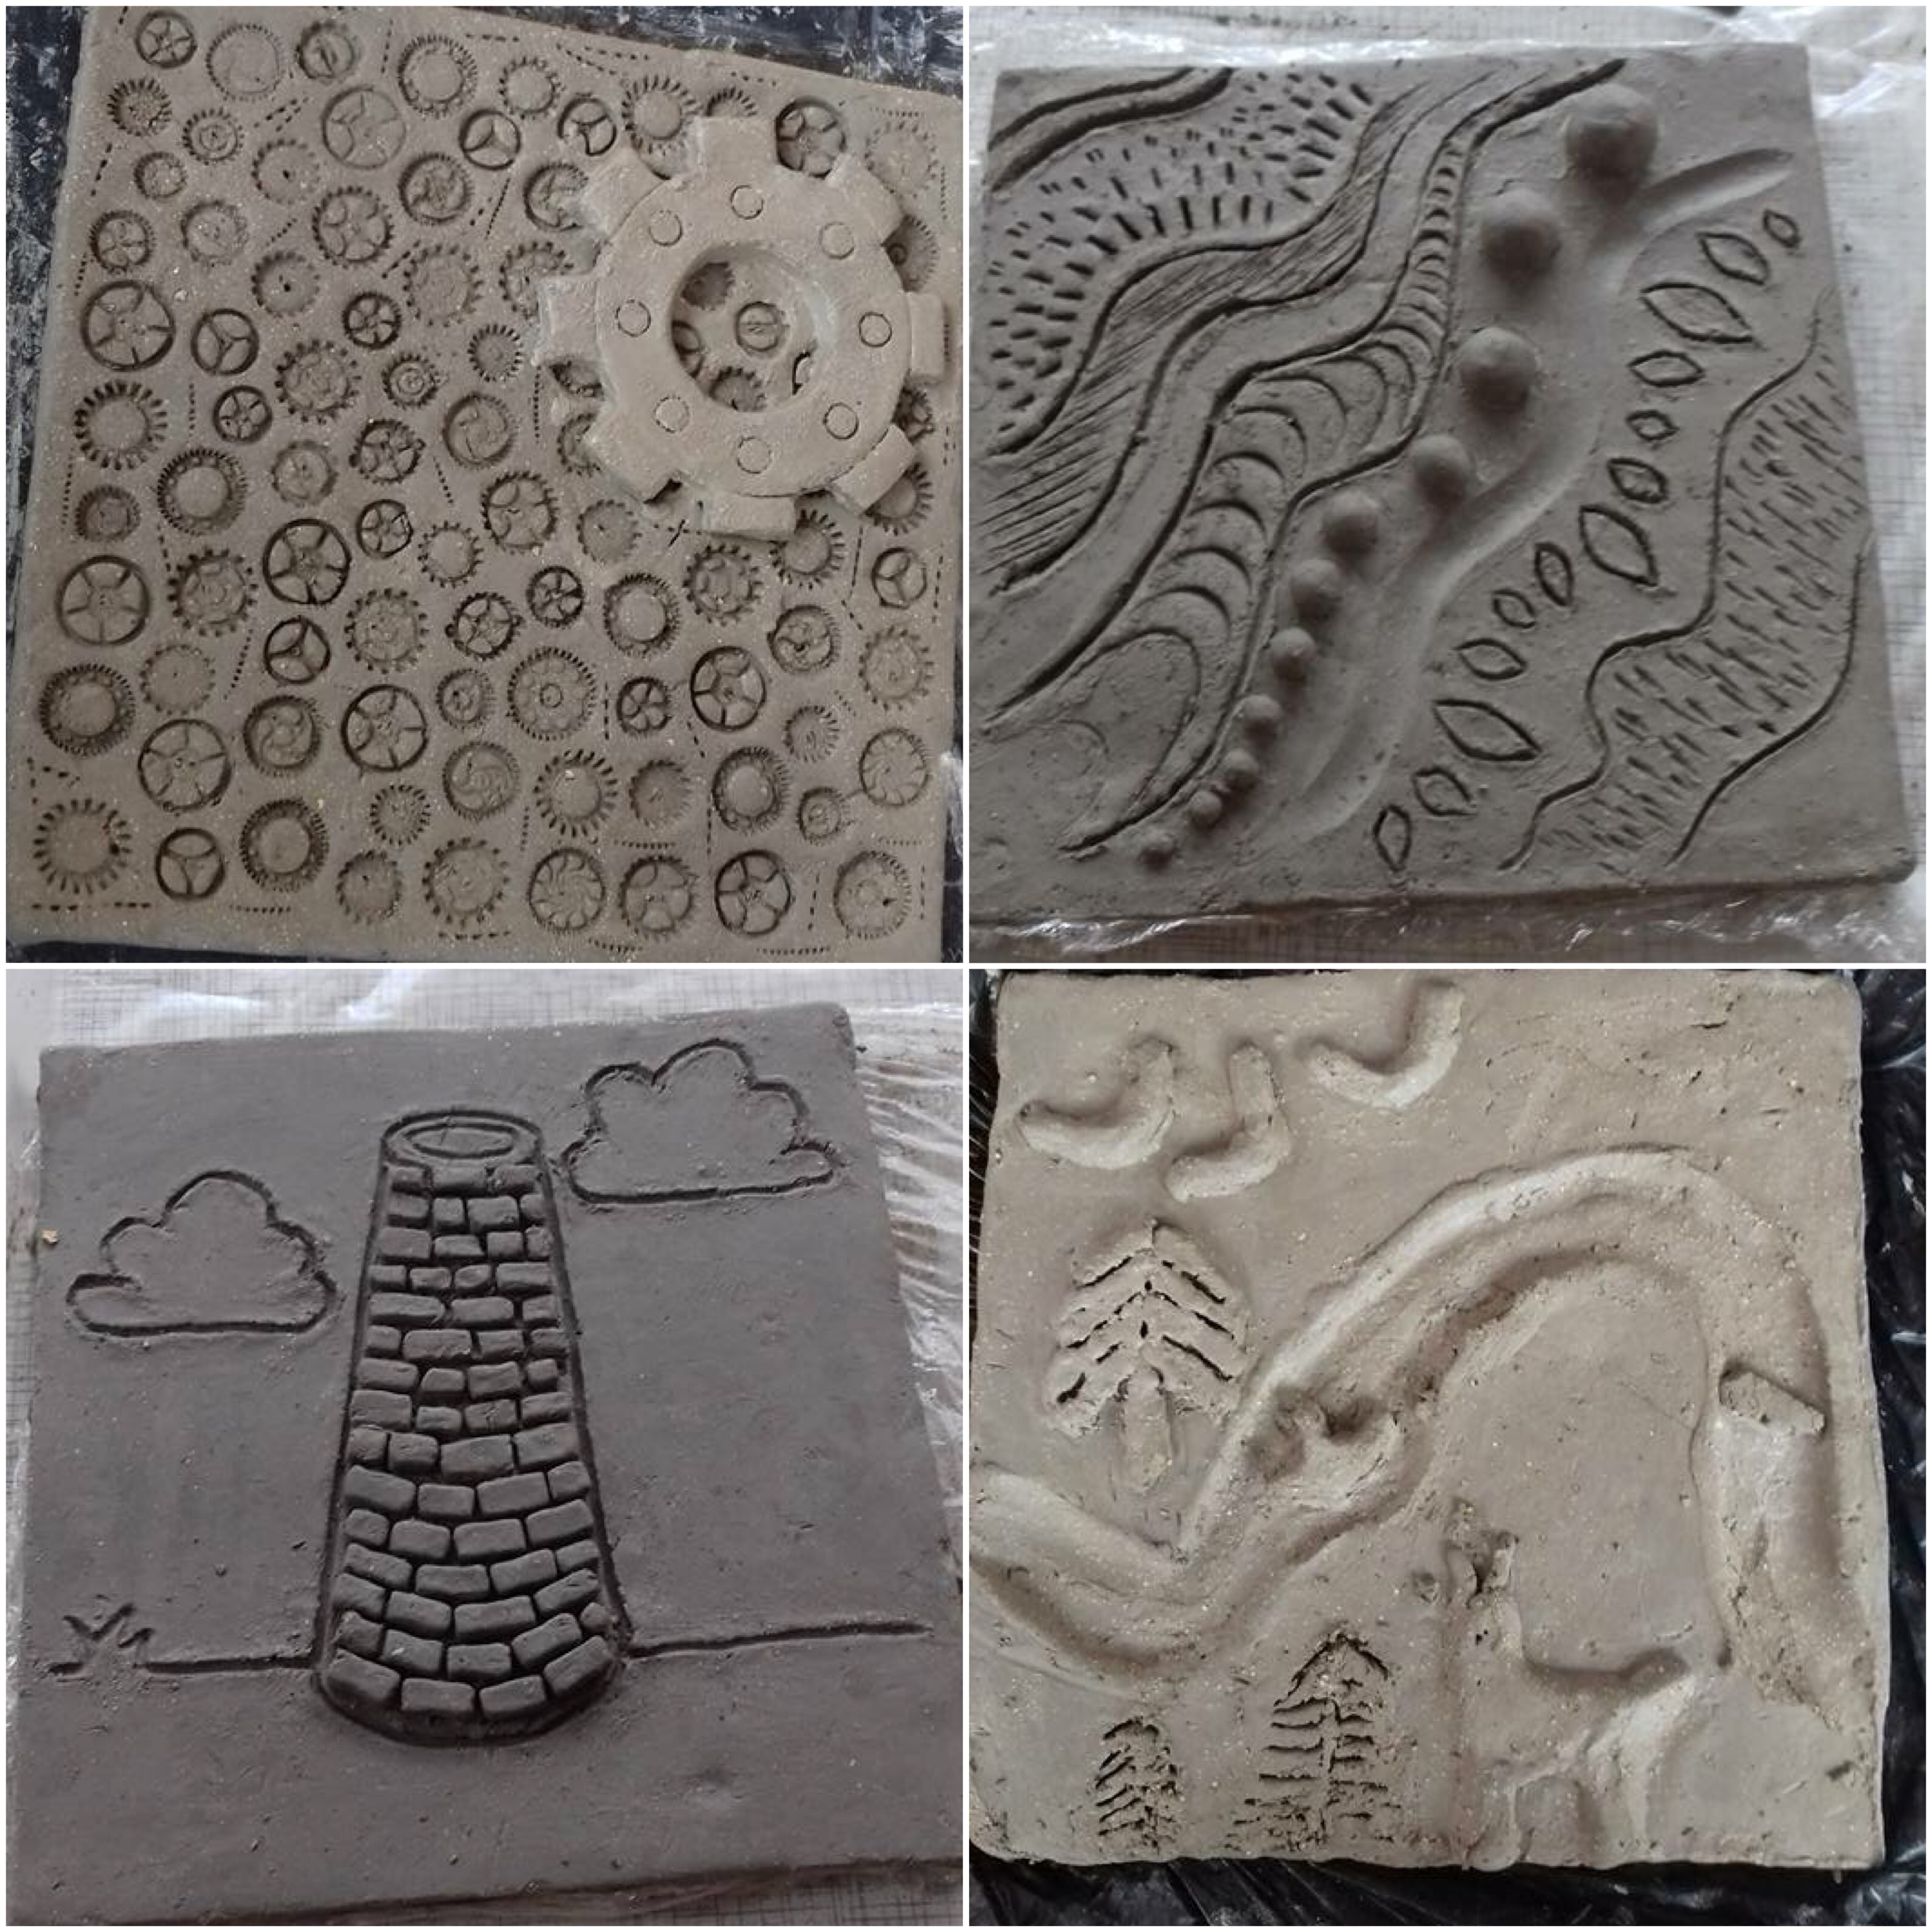 examples of the clay tiles